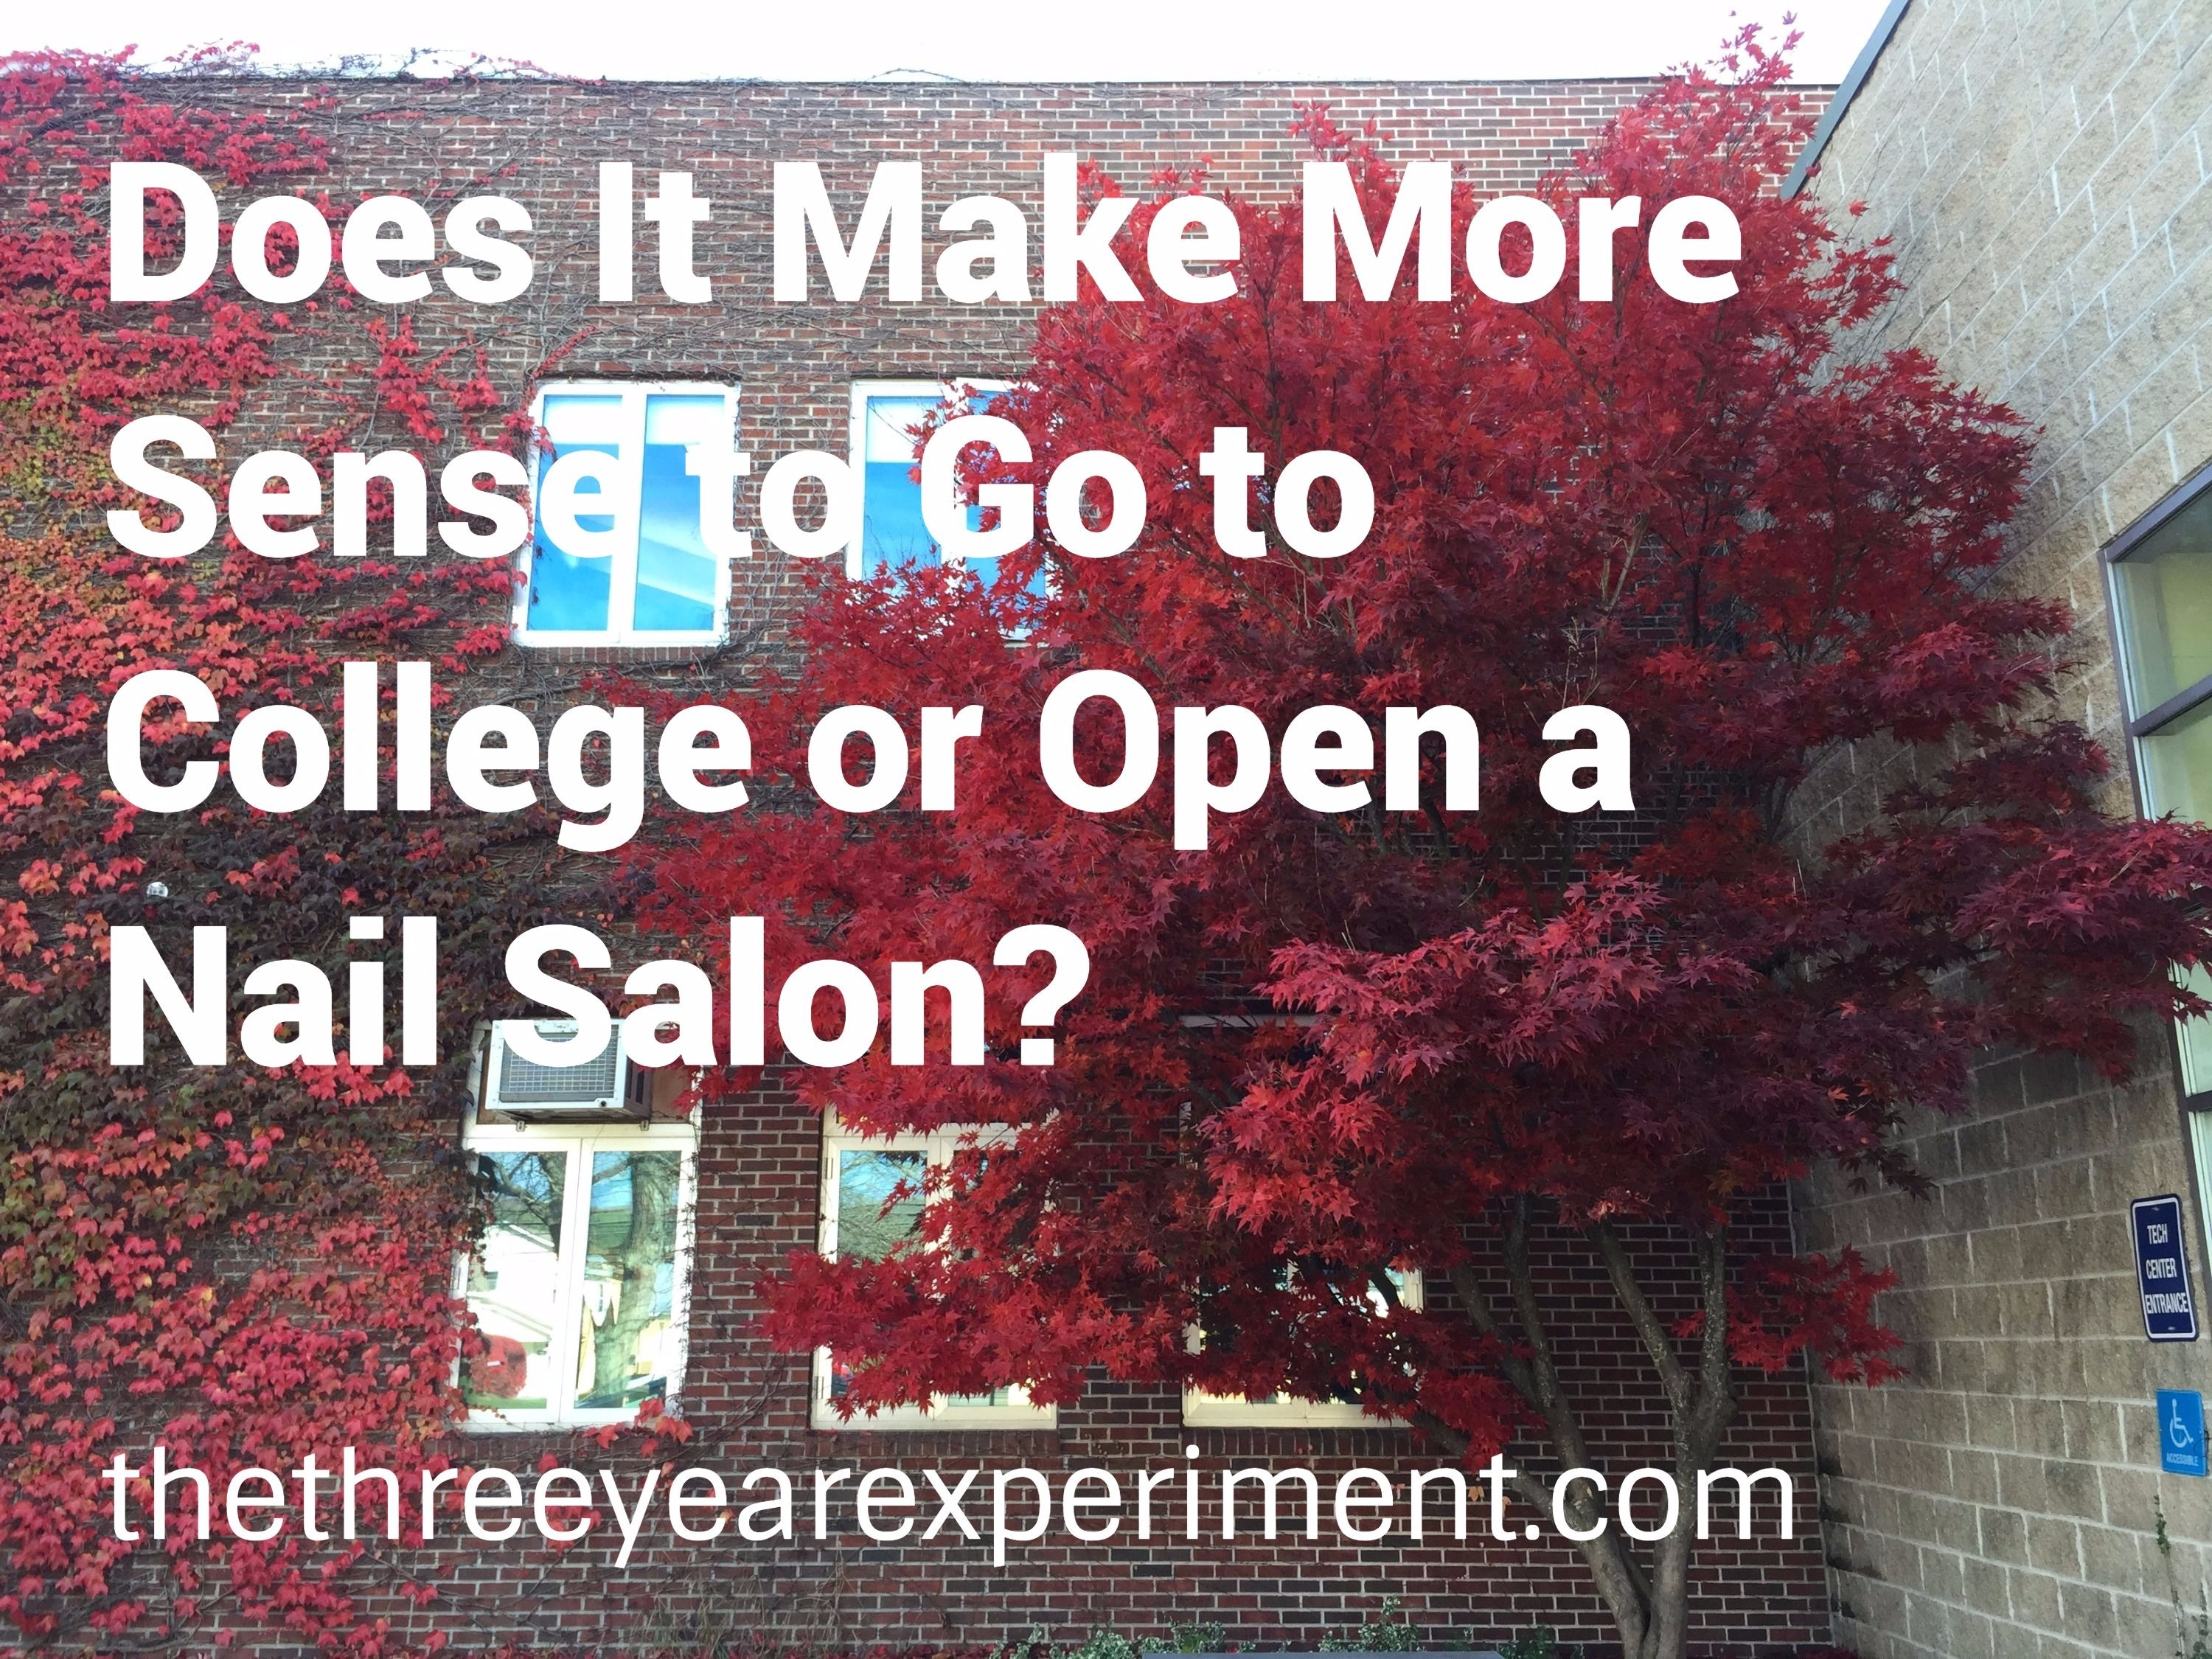 Does it Make More Sense to Go to College or Open a Nail Salon?--www.thethreeyearexperiment.com